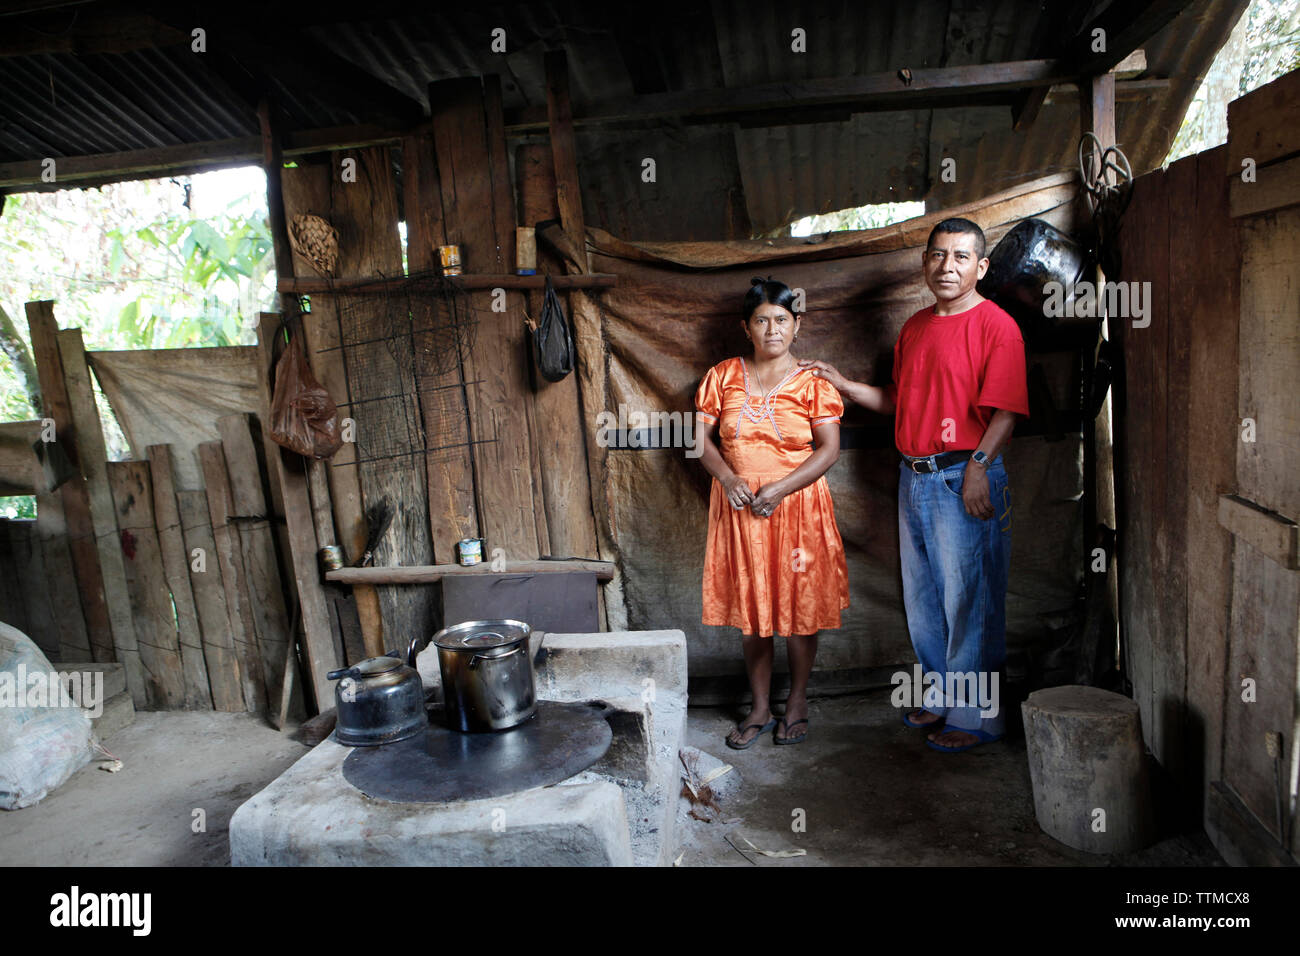 BELIZE, Punta Gorda, Toledo District, Cosme and Selestina Cho in their home in the Maya village of San Jose - Stock Image